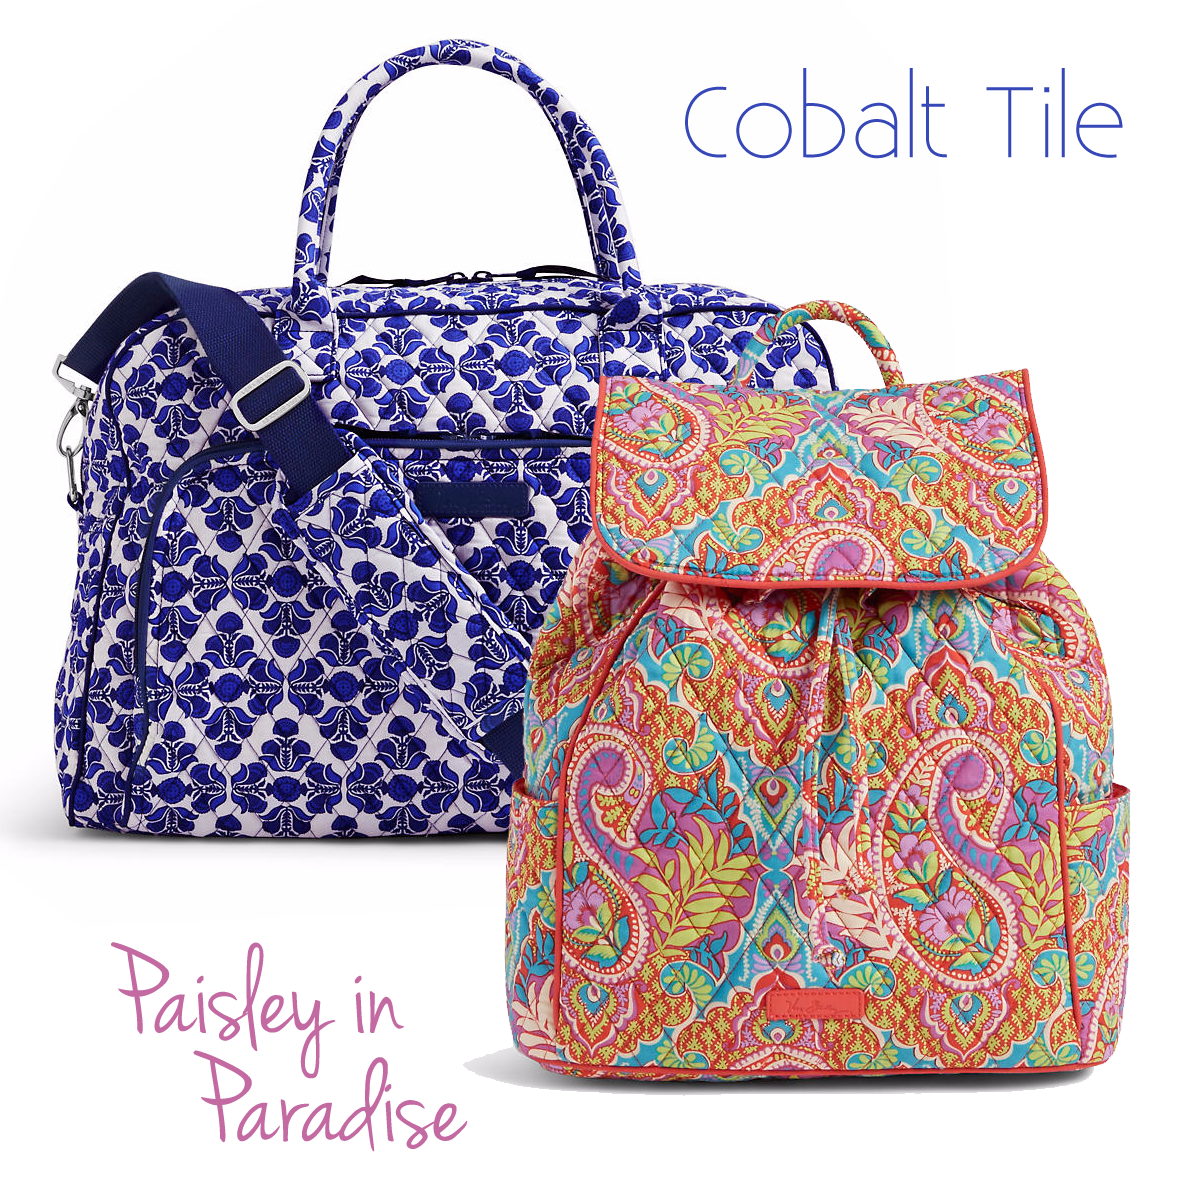 Cobalt Tile and Paisley in Paradise